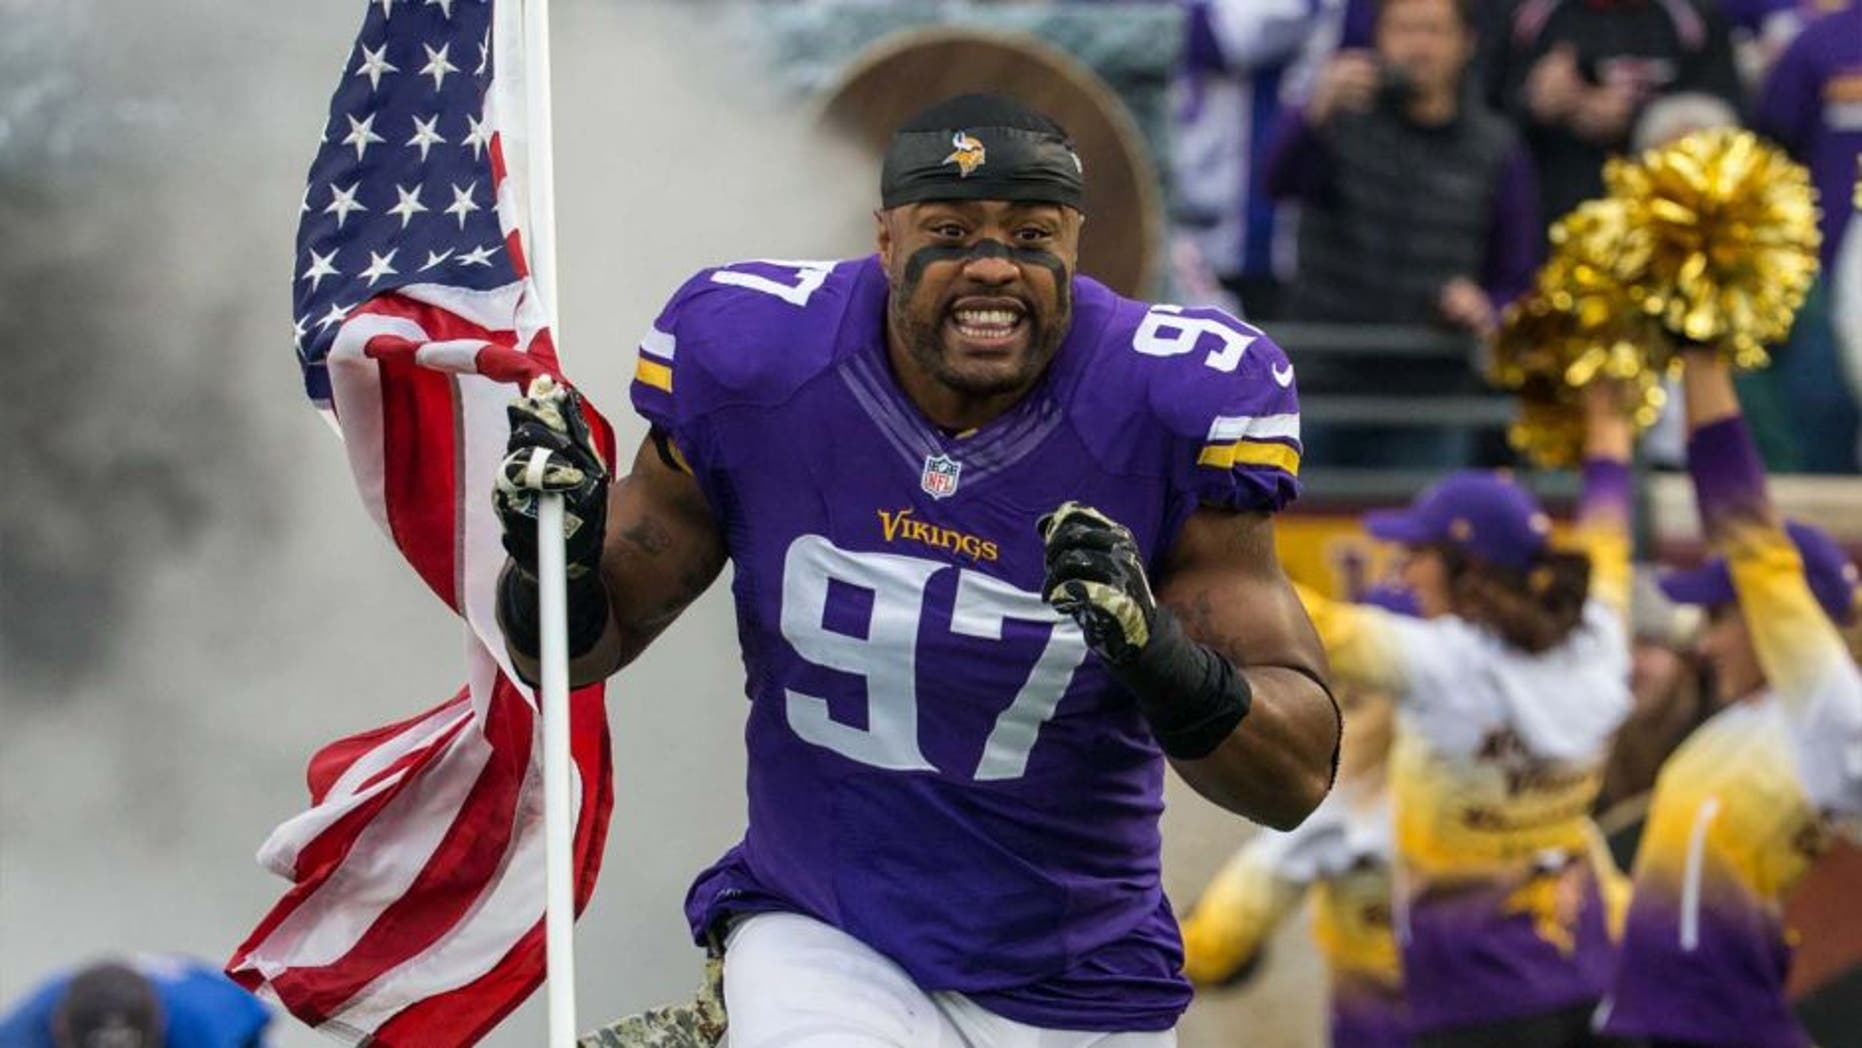 Sunday, November 23: Minnesota Vikings defensive end Everson Griffen carries the American flag on the field prior to the game against the Green Bay Packers at TCF Bank Stadium.